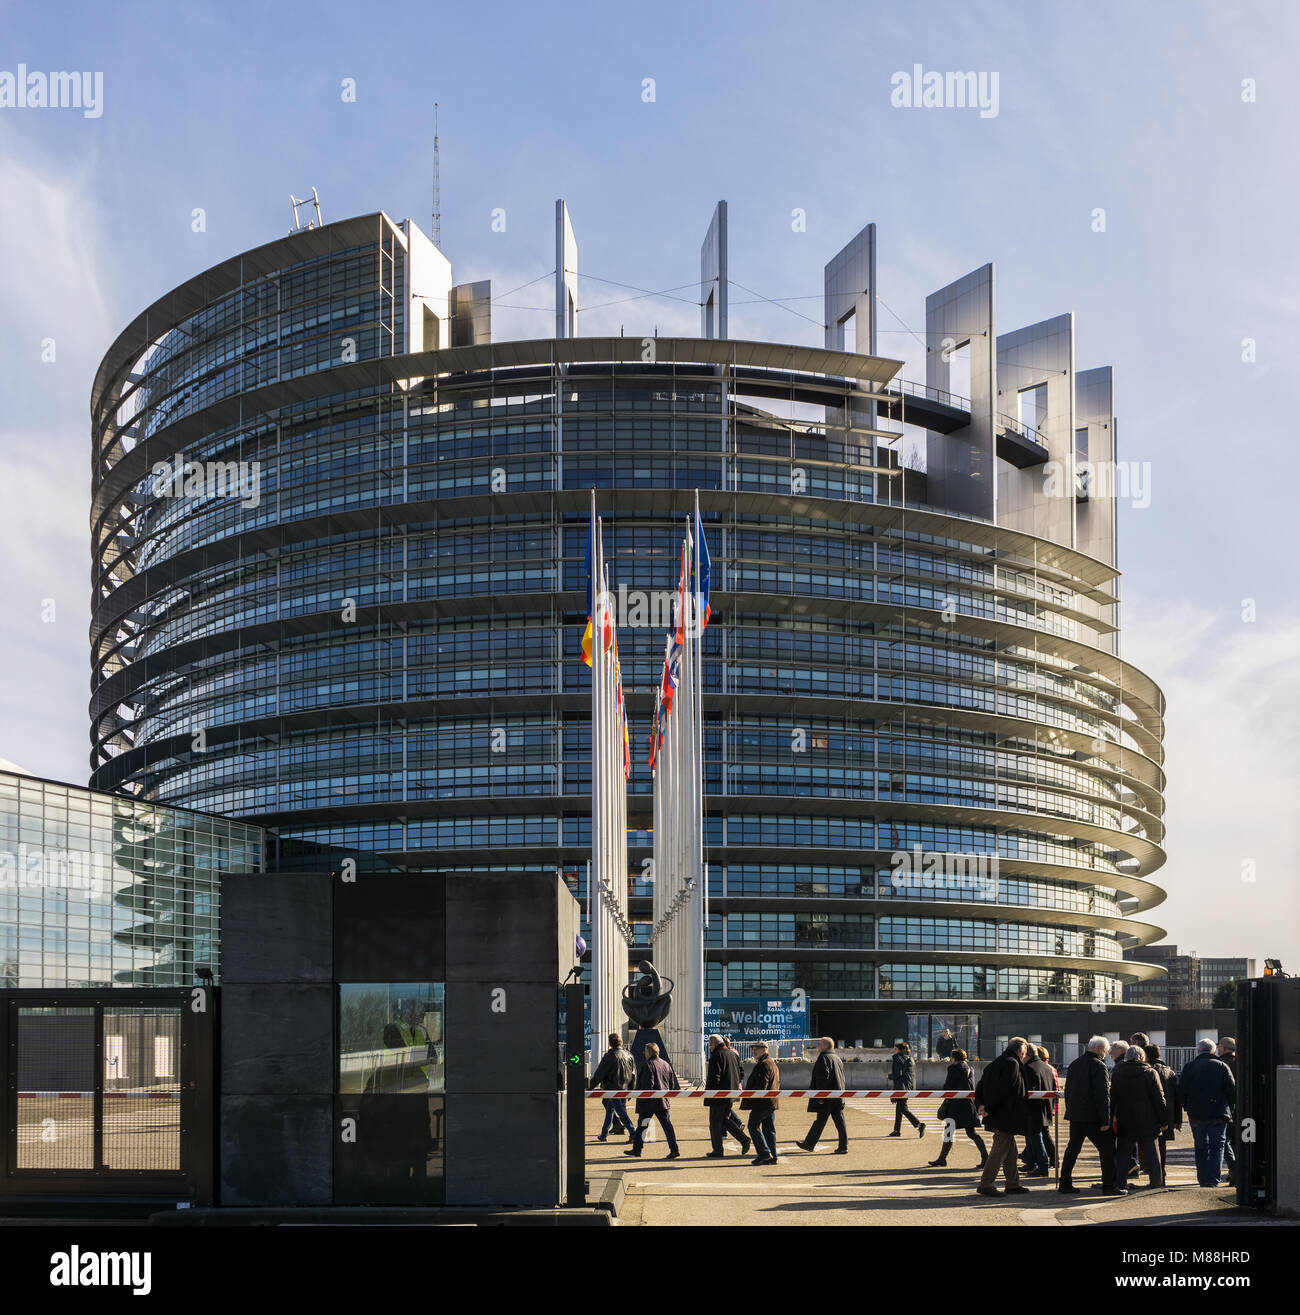 The Louise Weiss building, seat of the European Parliament, with tourists coming in, Strasbourg, France. - Stock Image